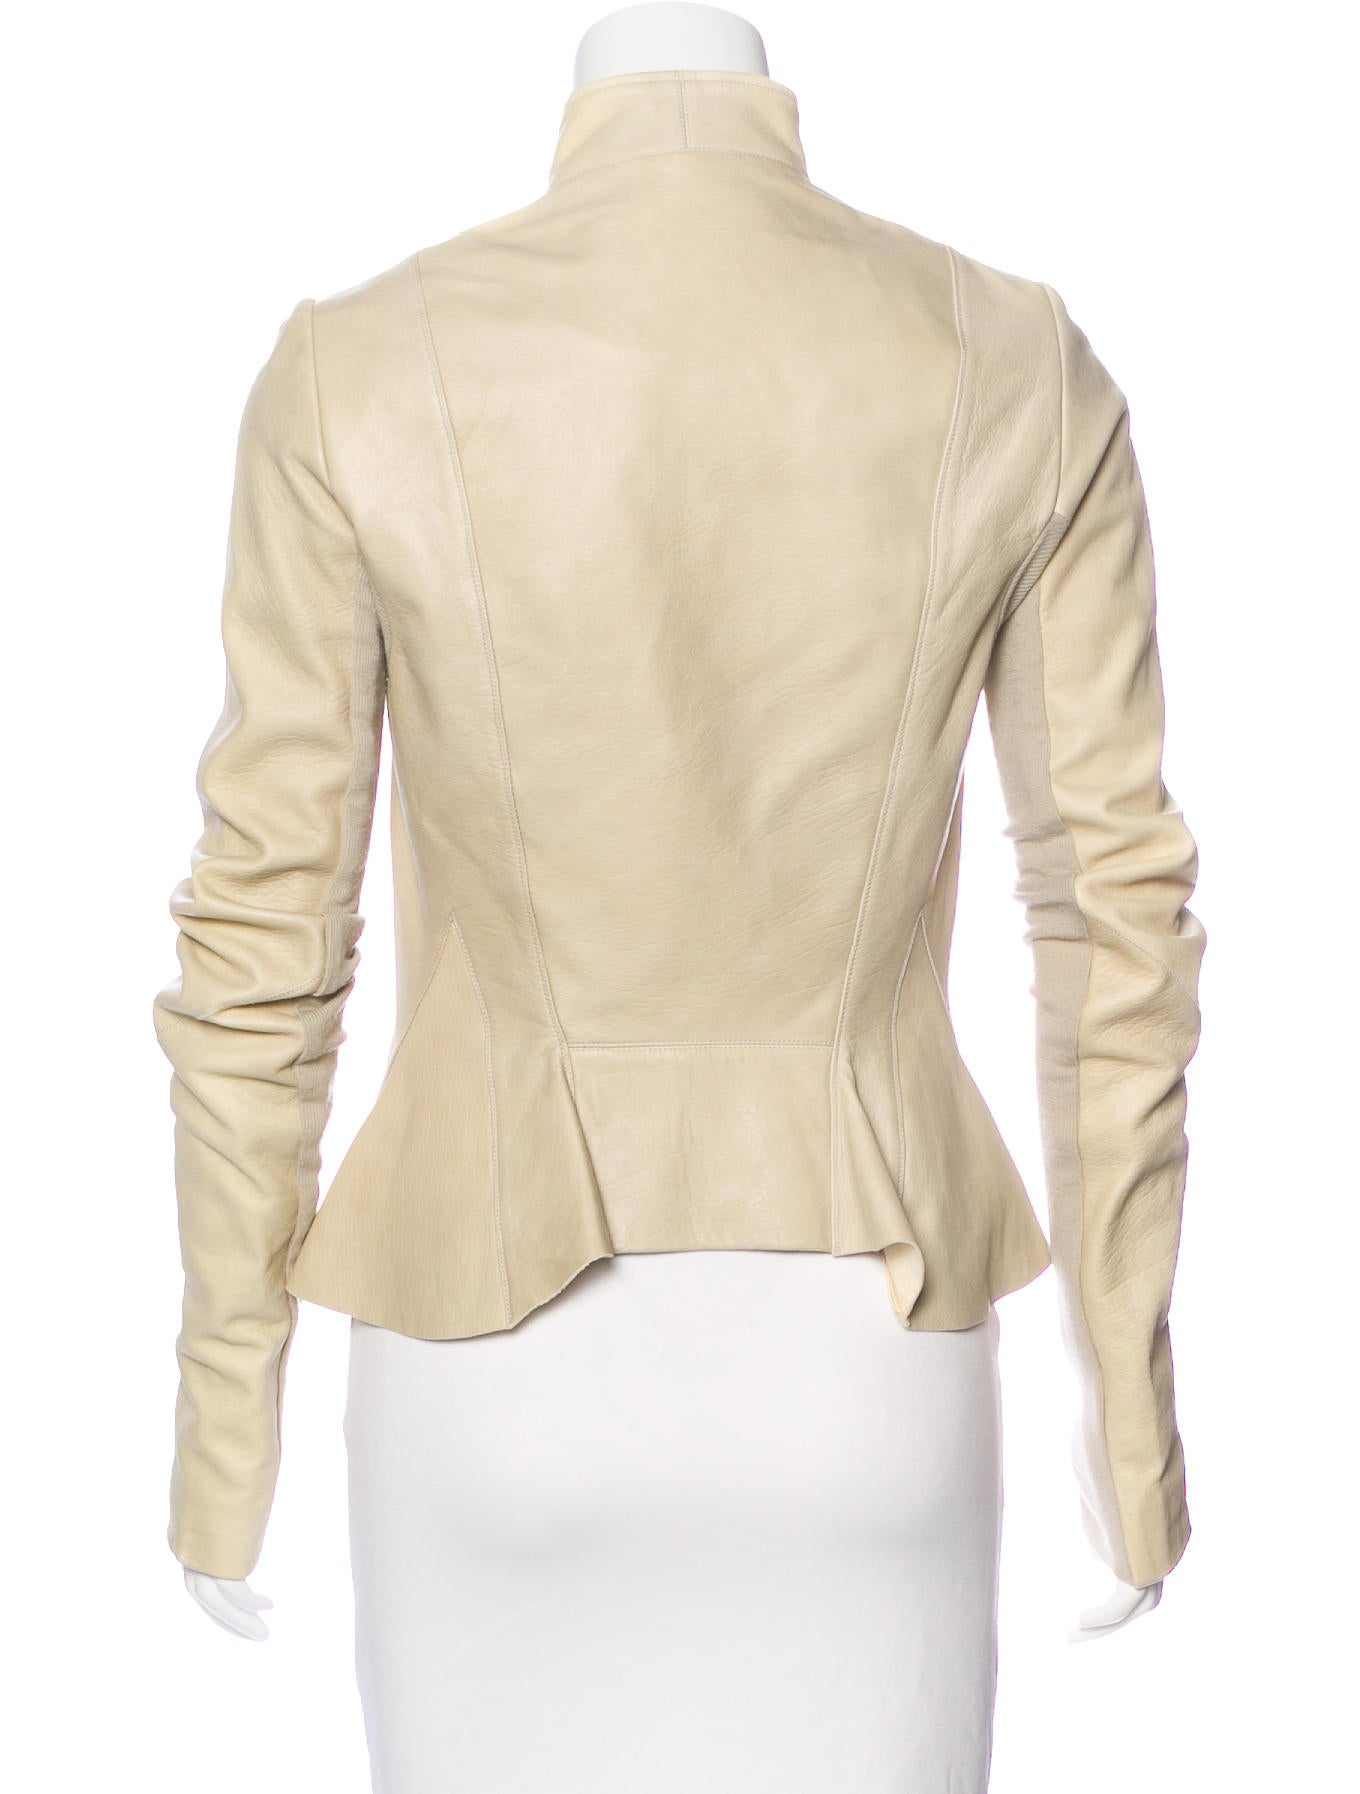 CASUAL THIN LIGHTWEIGHT JACKET WITH LEATHER SLEEVE AND SLIM PATTERN. Lock and Love LL Womens Hooded Faux leather Jacket. by Lock and Love. $ - $ $ 17 $ 59 95 Prime. FREE Shipping on eligible orders. Some sizes/colors are Prime eligible. out of 5 stars 3, Product Features.